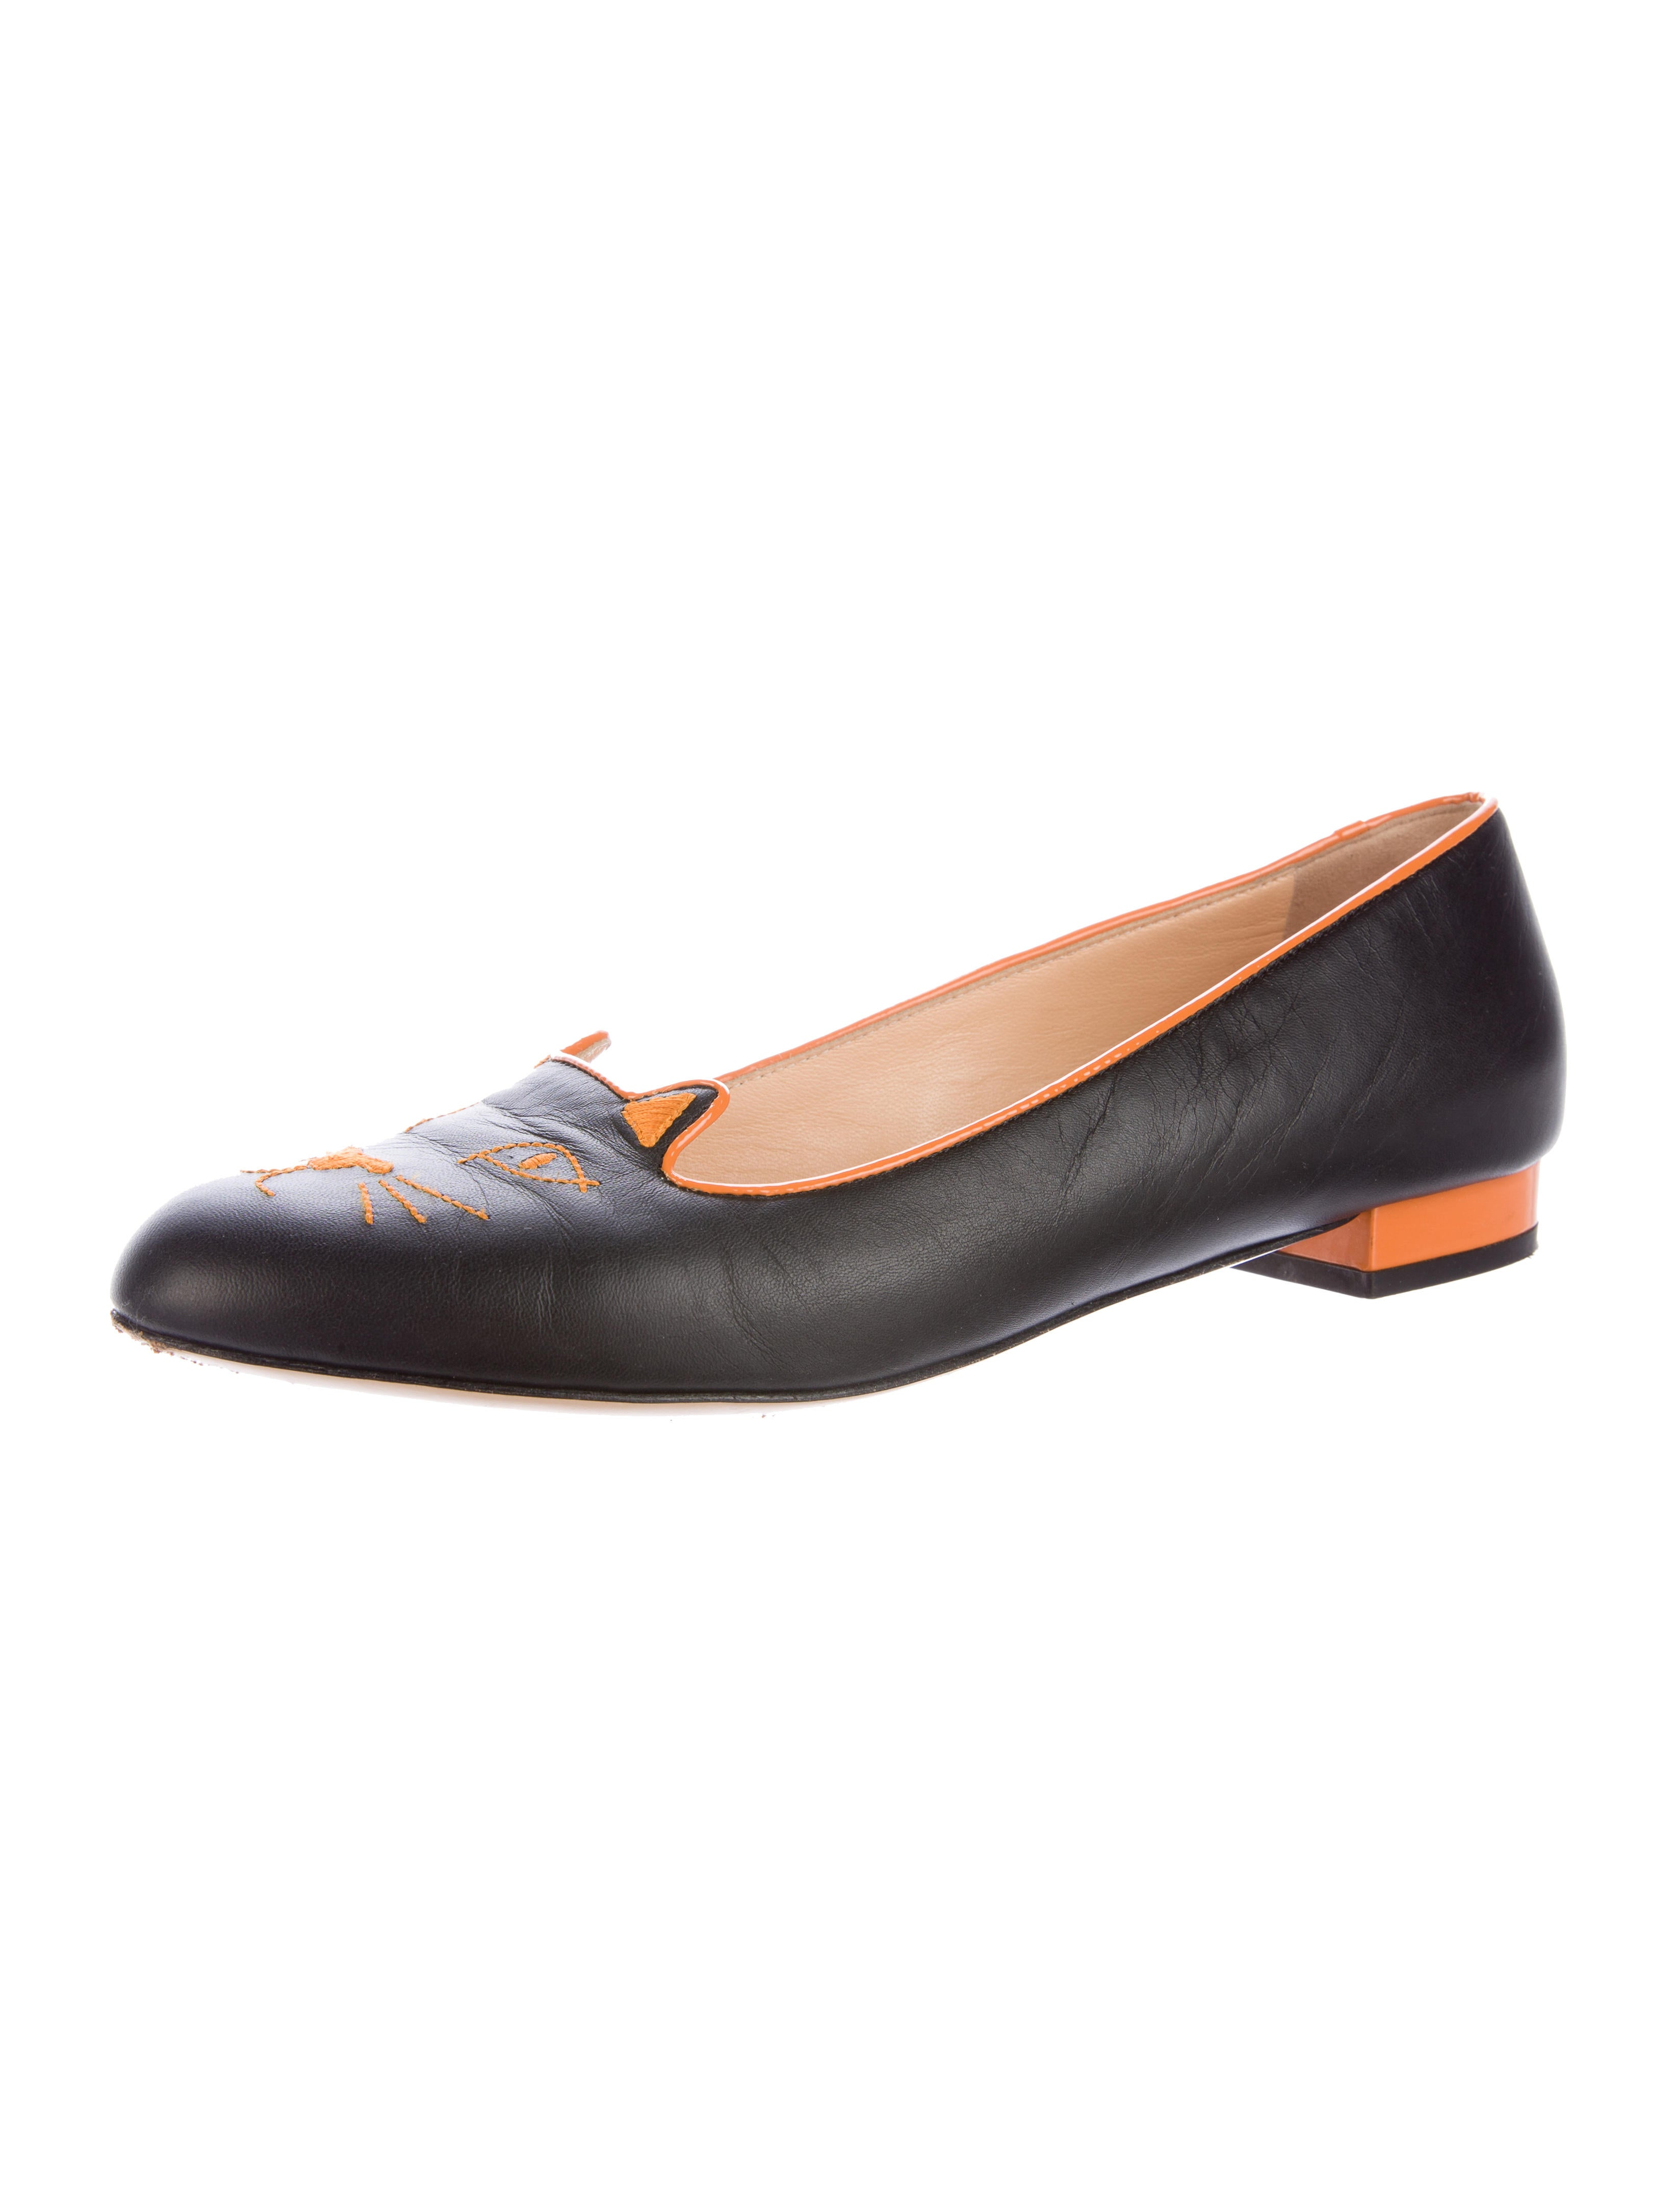 Charlotte Olympia Leather Cat Flats Shoes Cio22823